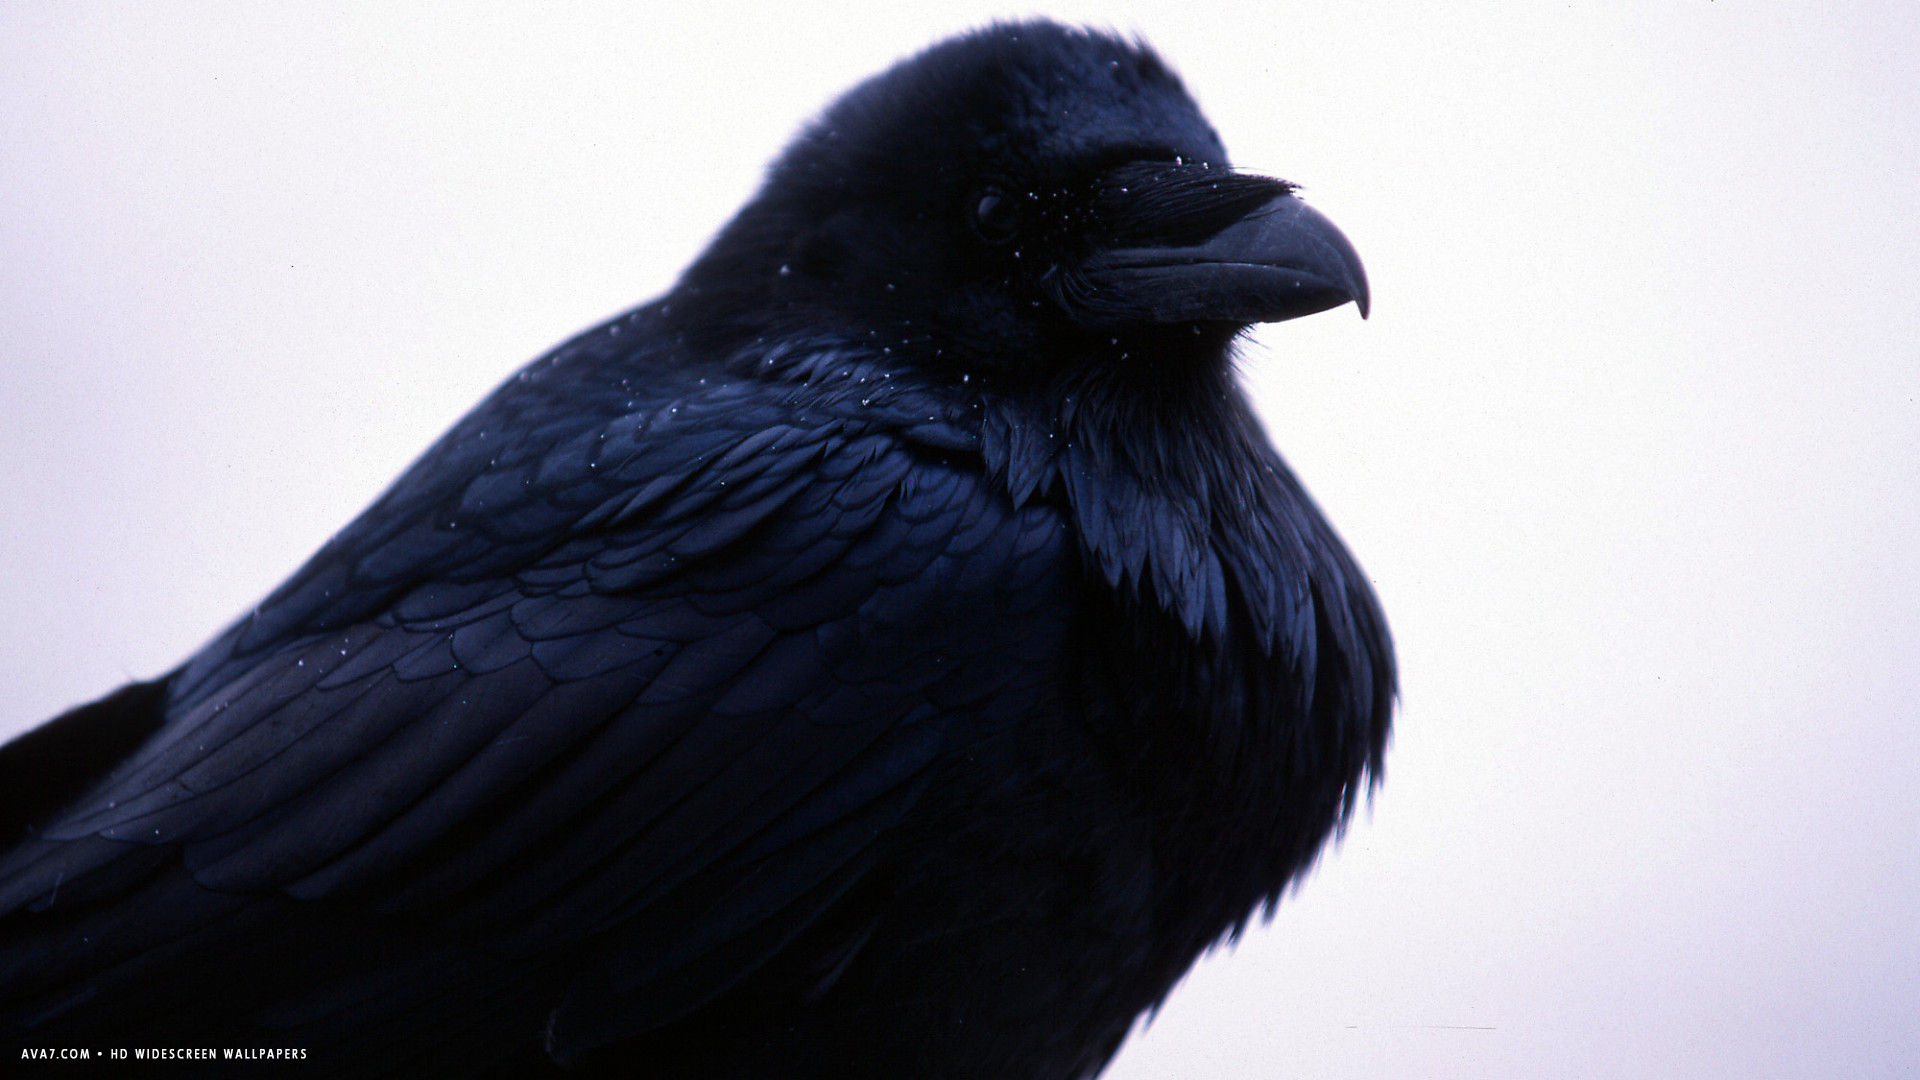 raven black bird hd widescreen wallpaper